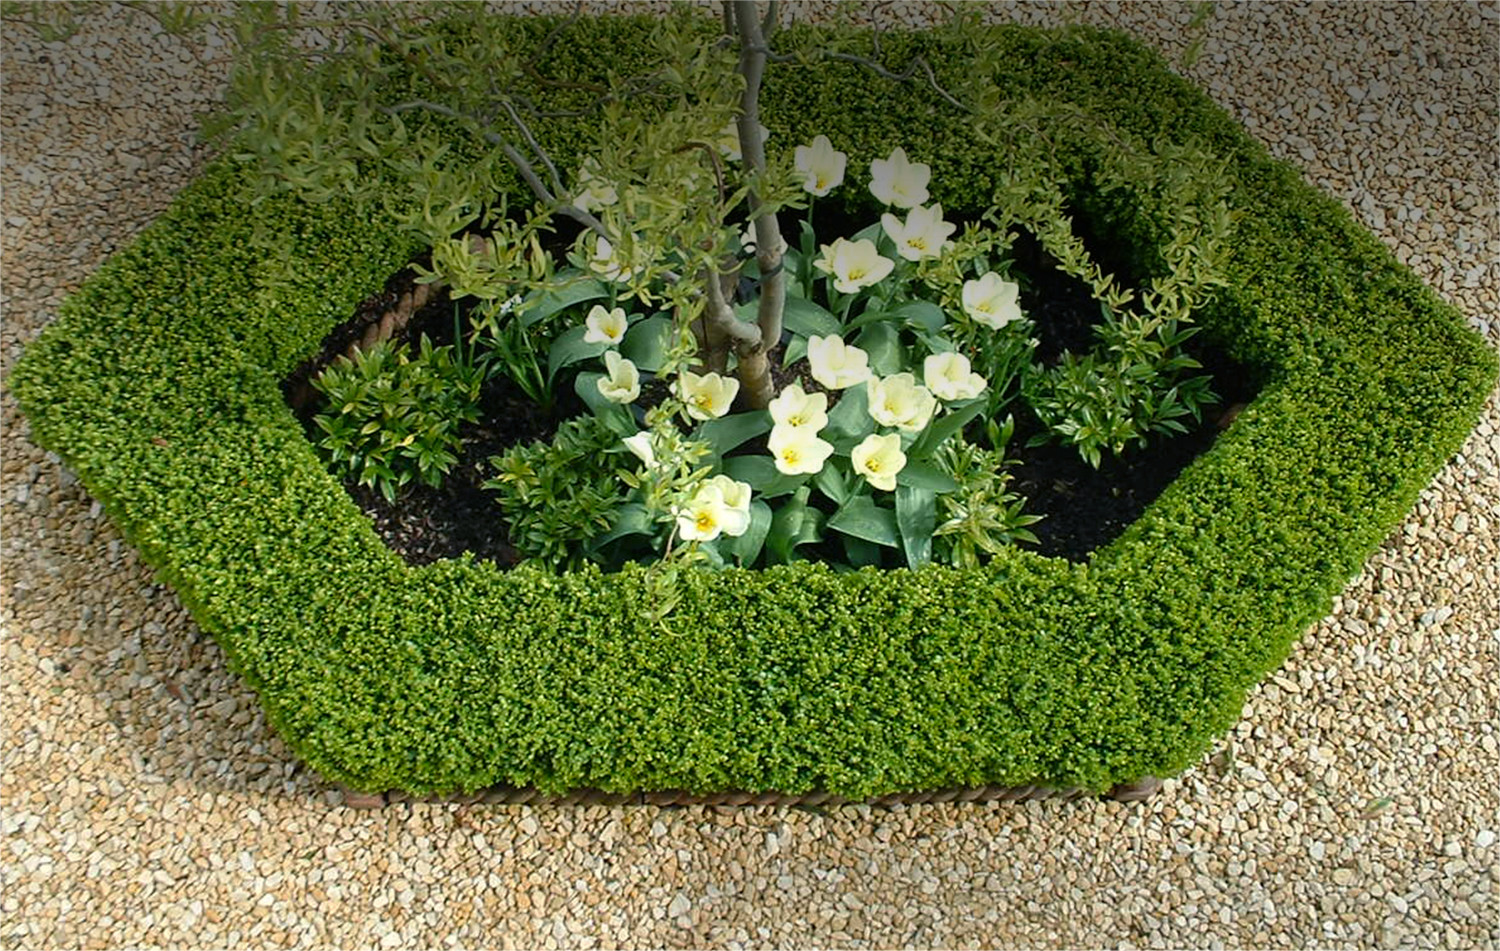 carol king is a garden designer based in guildford